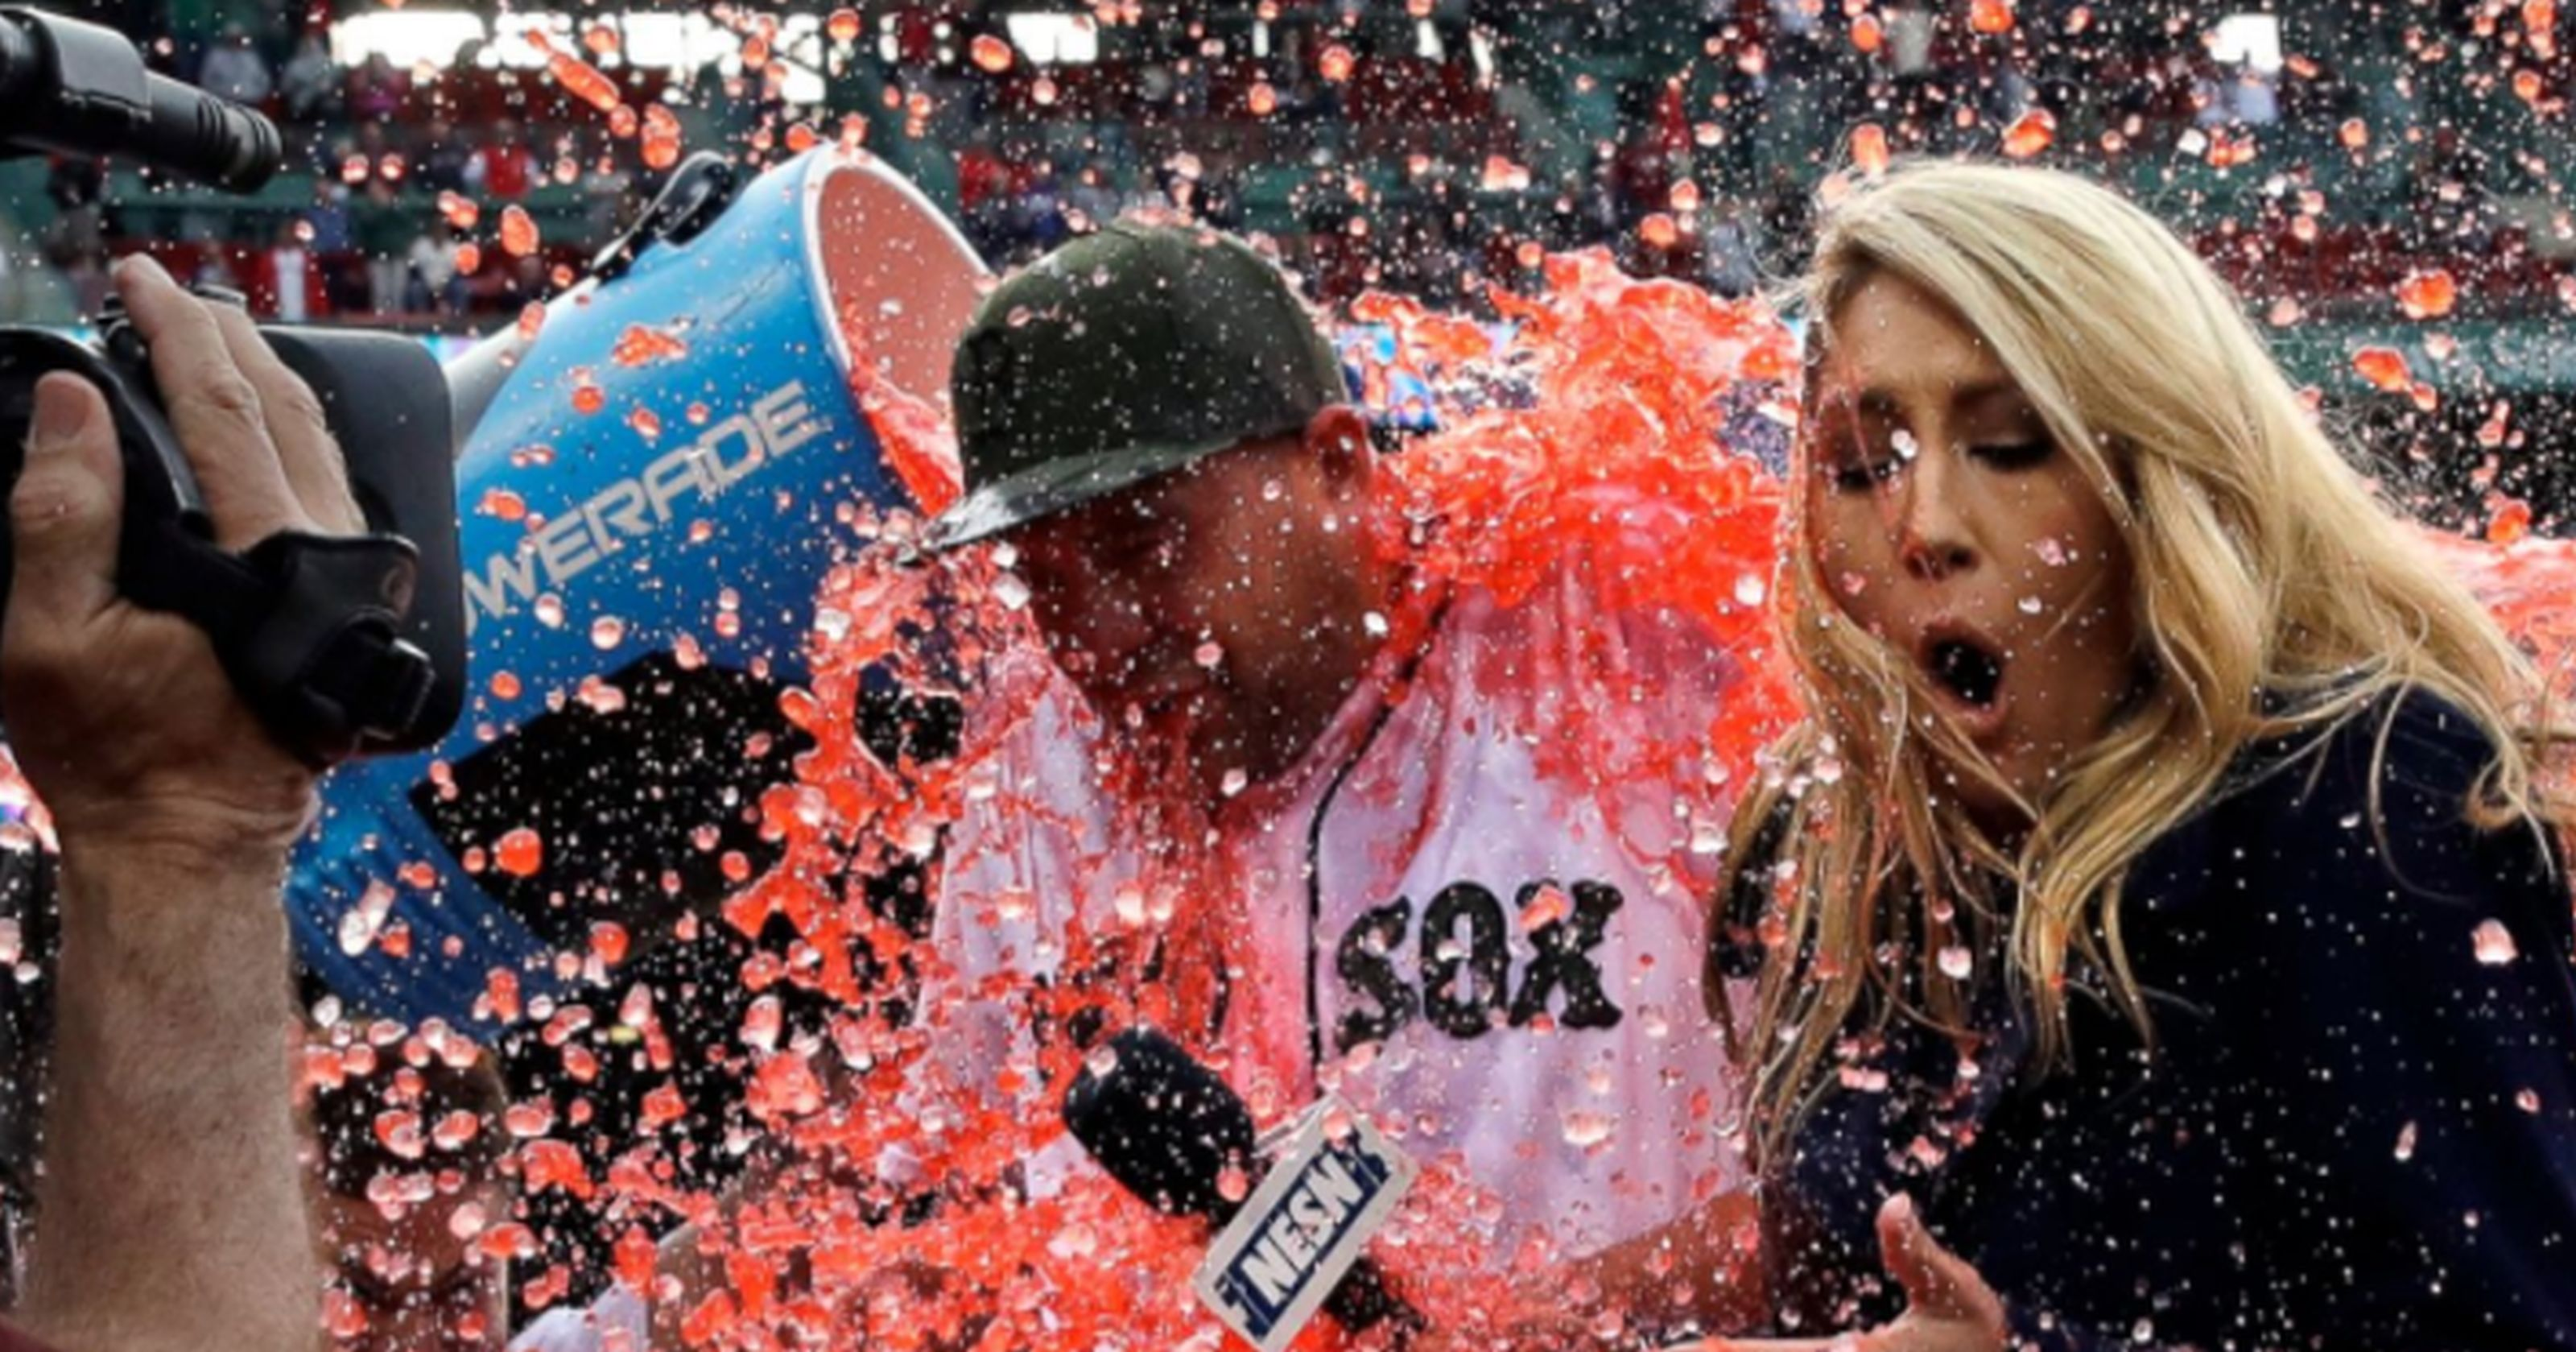 Boston Red Sox starting pitcher Brian Johnson, left, and television field reporter Guerin Austin, are doused after a baseball game against the Seattle Mariners at Fenway Park in Boston, Saturday, May 27, 2017. Johnson threw a complete game. AP WIREPHOTO/Charles Krupa